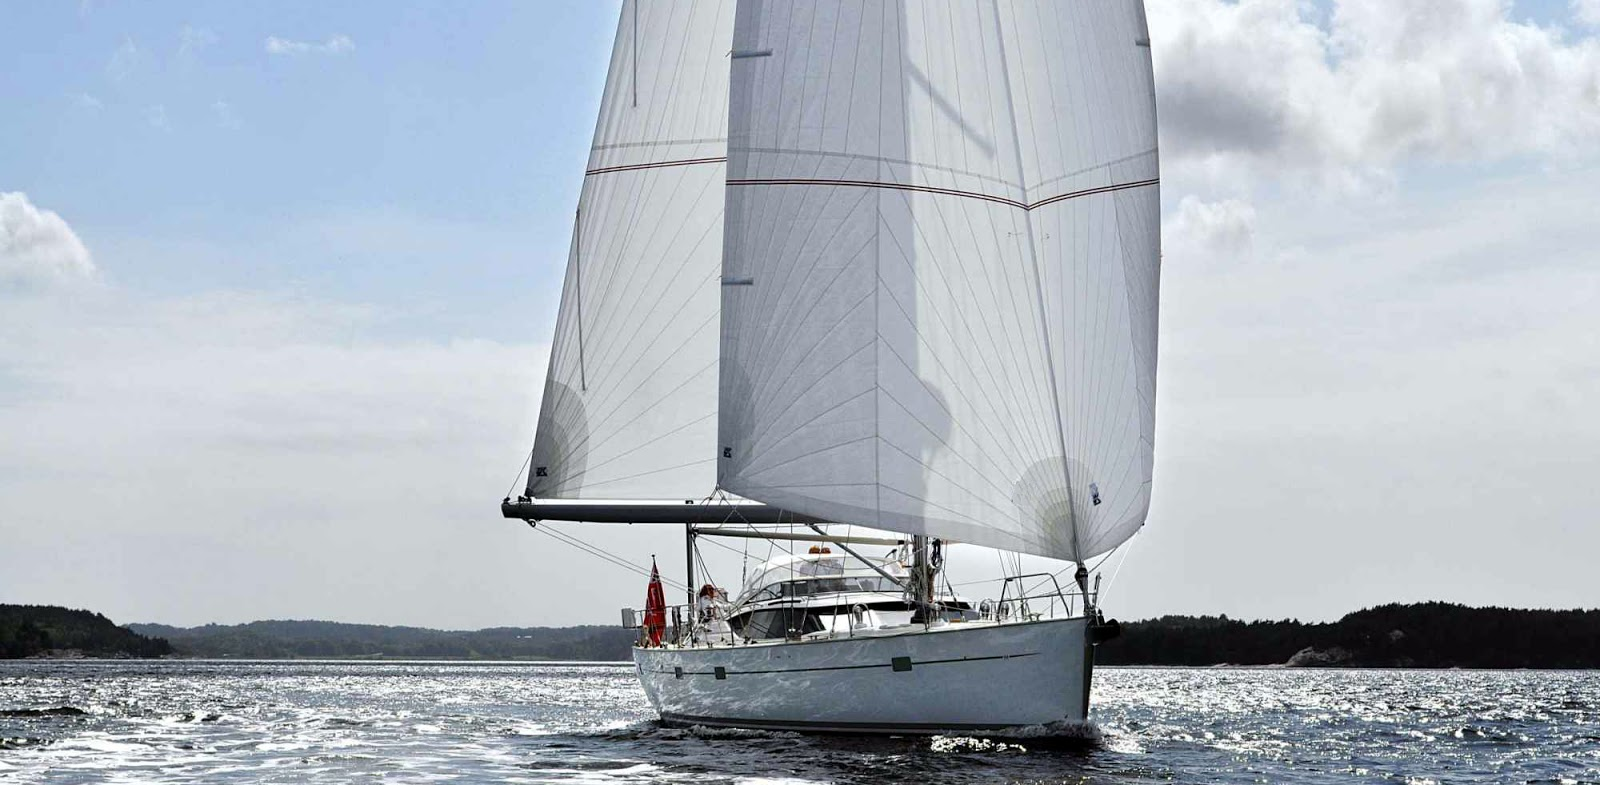 Become a better sailor - read the articles